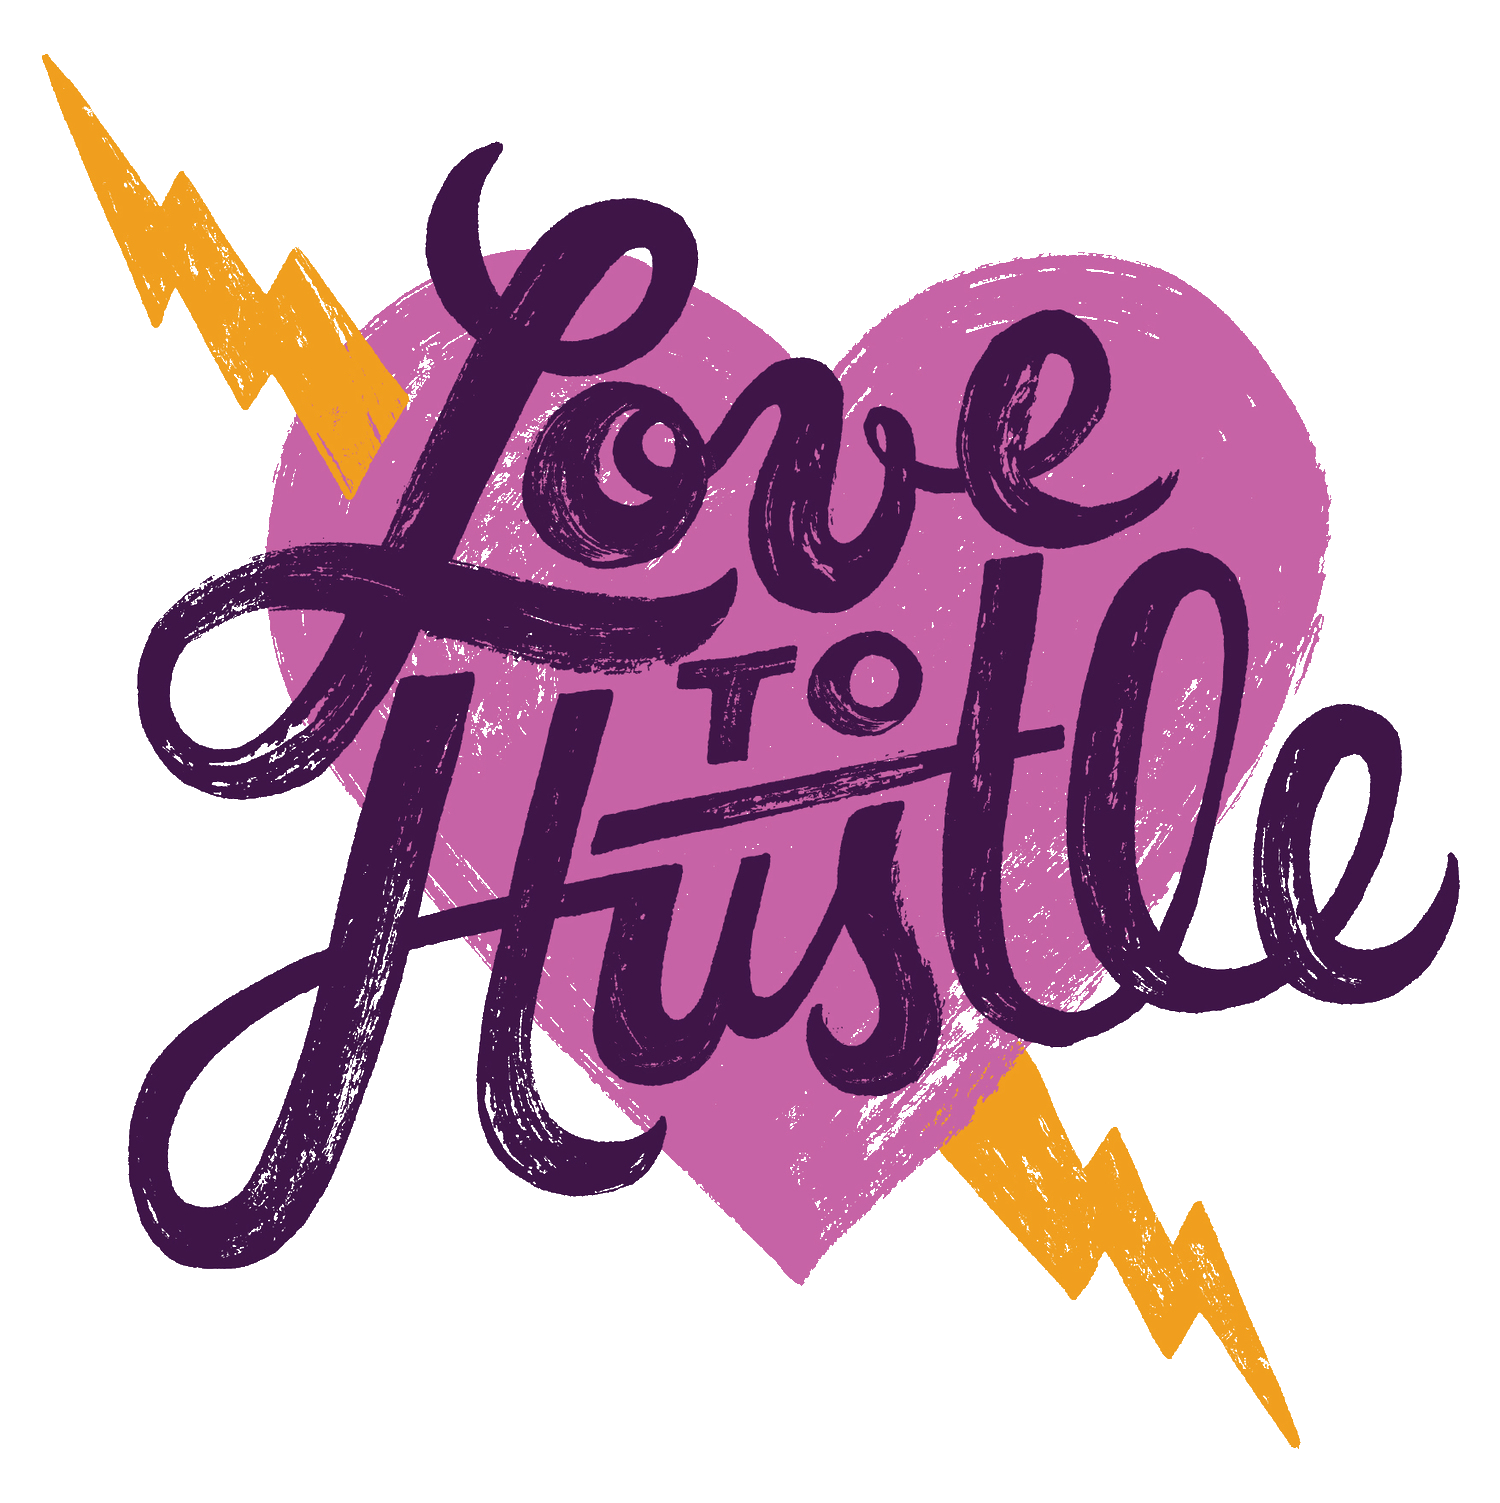 LovetoHustle_1.png